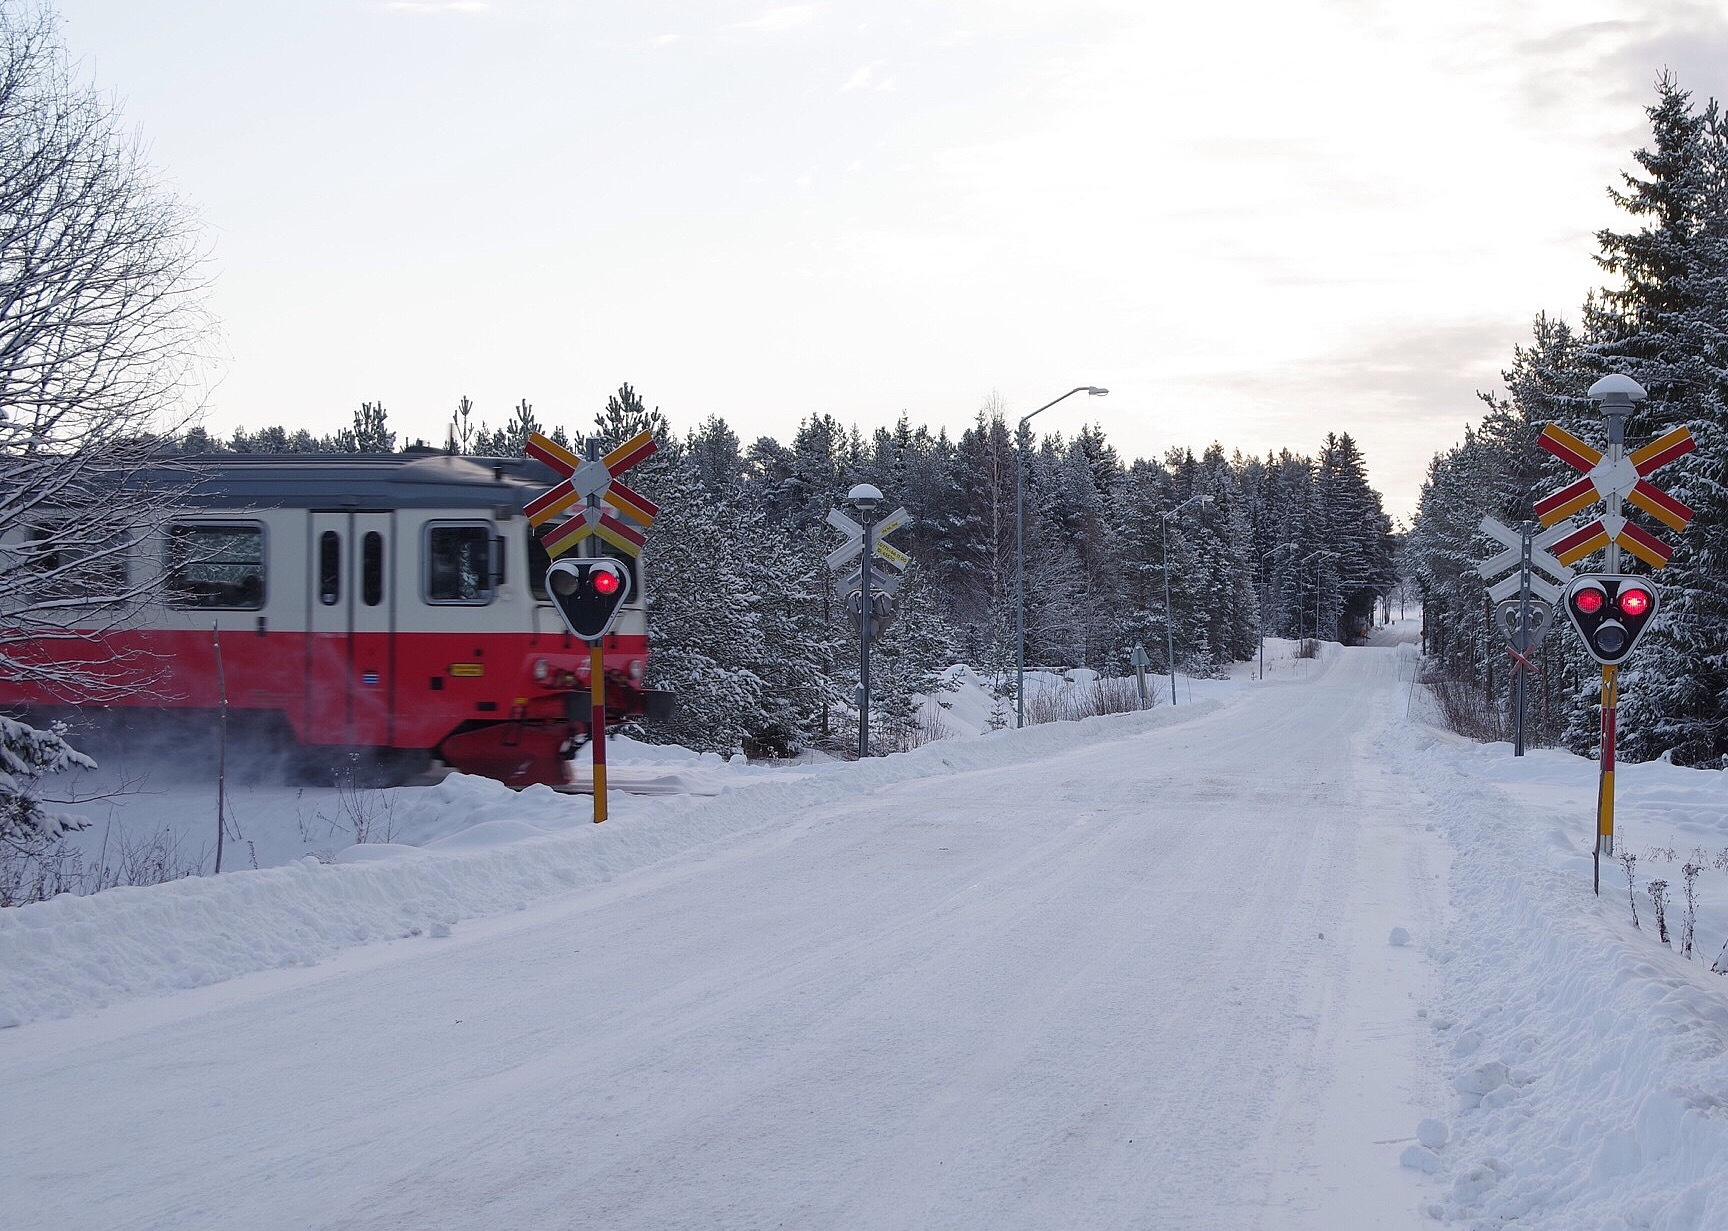 Railcar on it's way by lundhanders